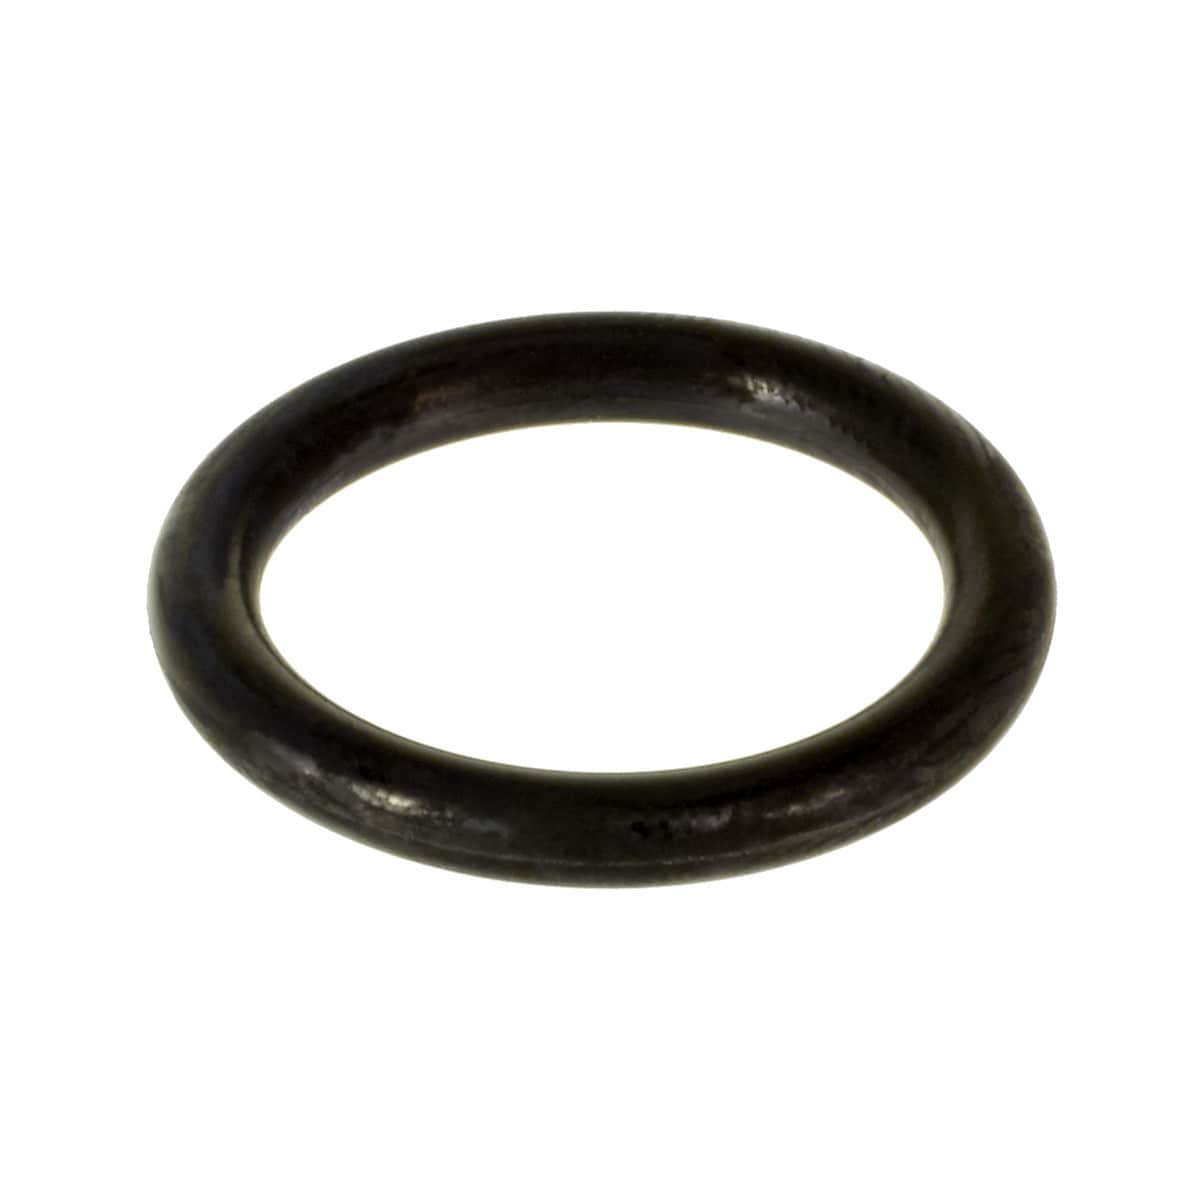 O-ring Kärcher 18 x 3 mm